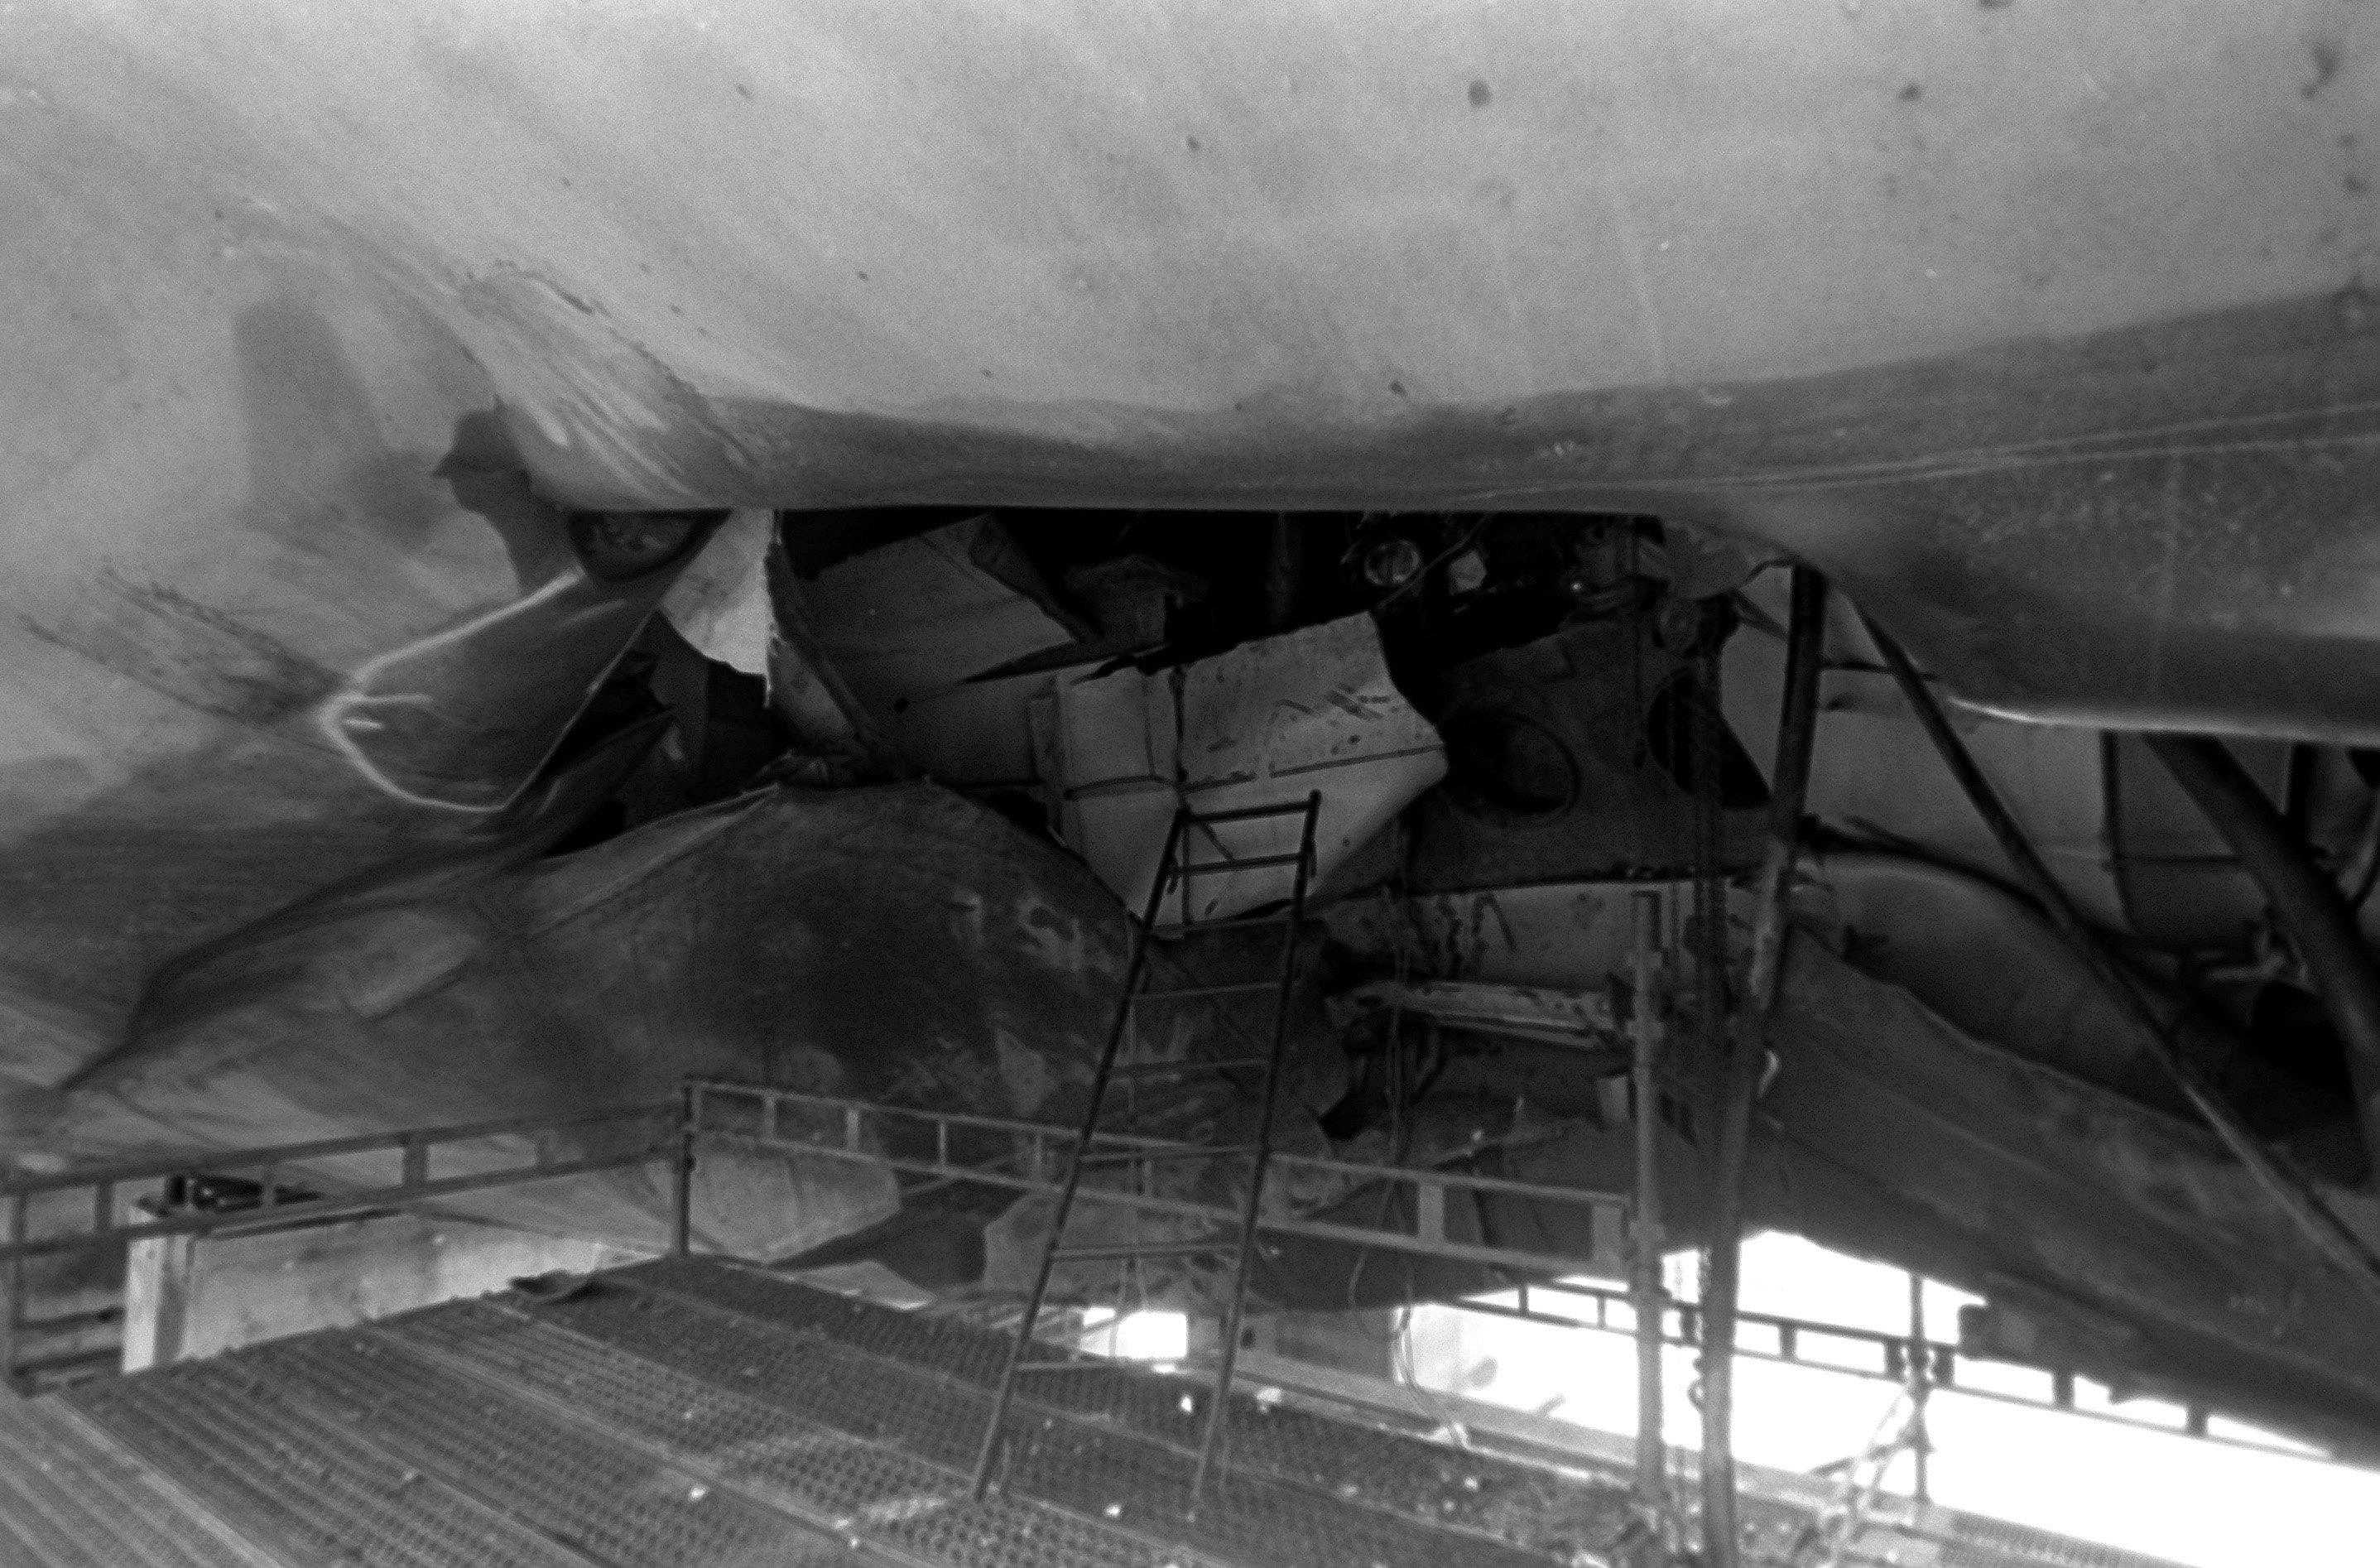 8989cbbd821 A view of damage to the hull of the guided missile frigate USS SAMUEL B.